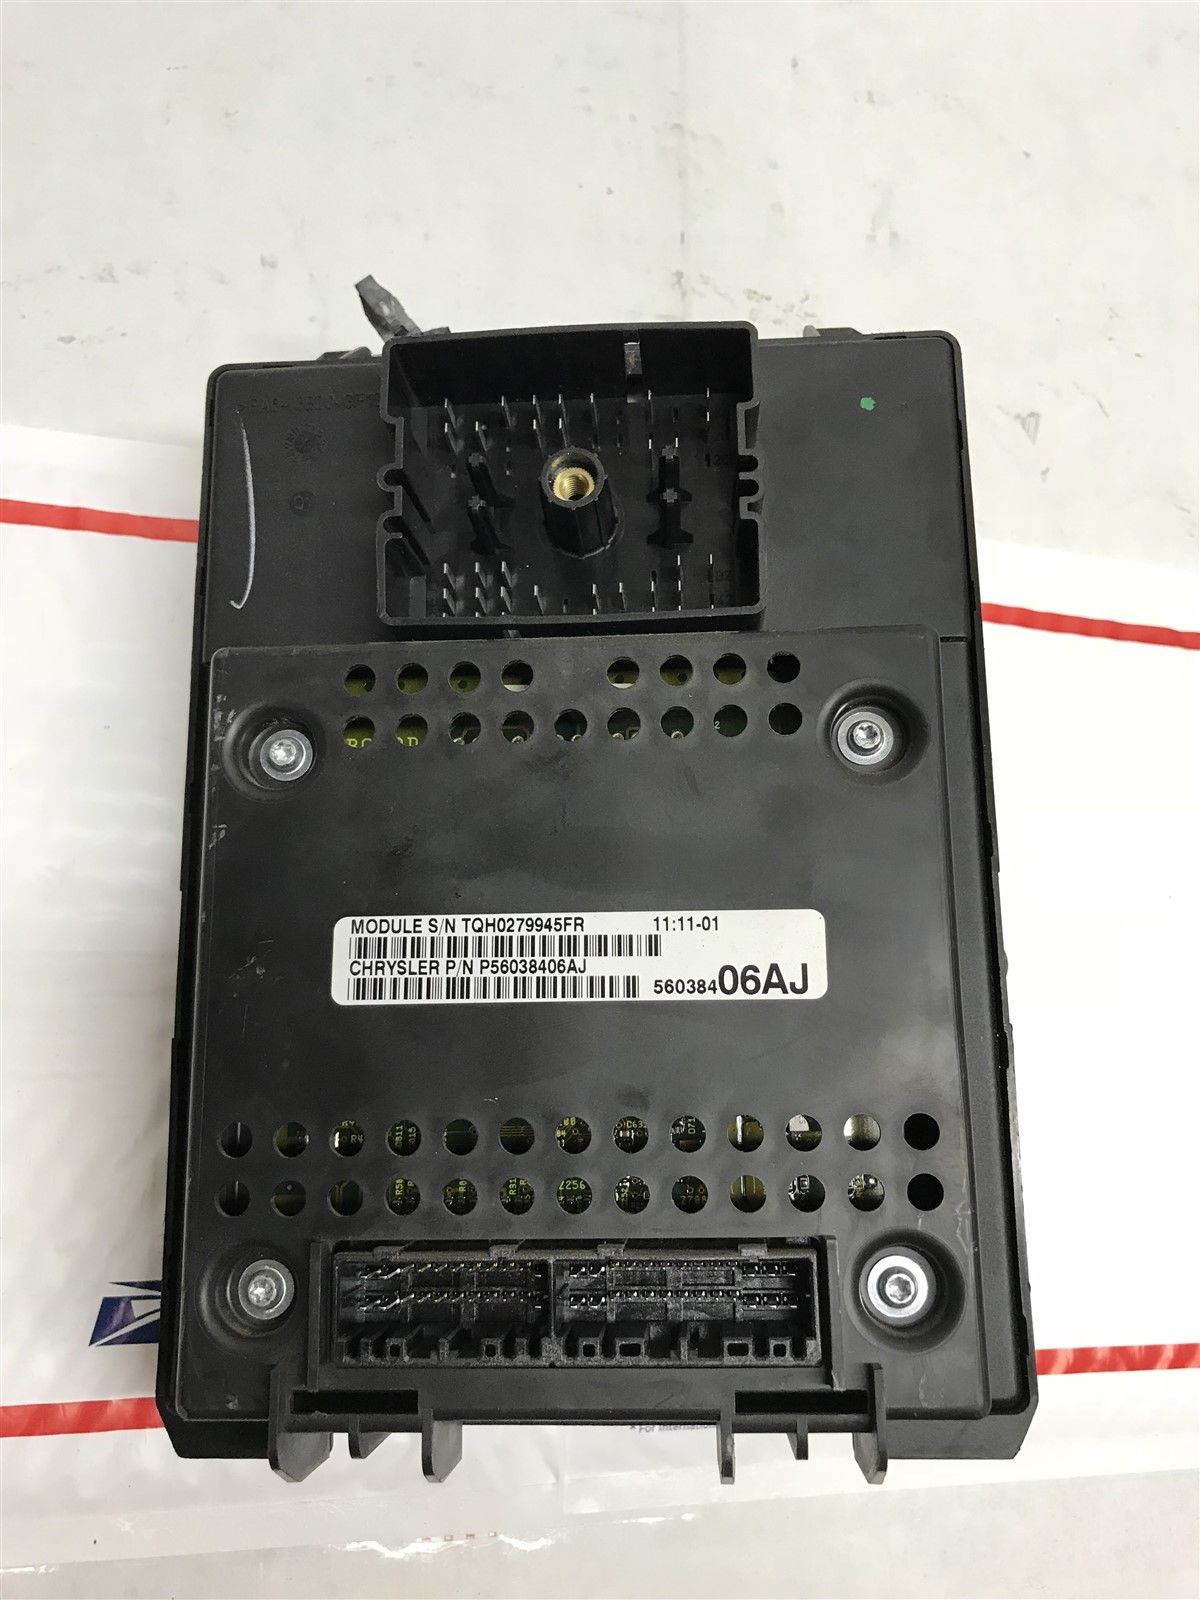 1999 01 Jeep Grand Cherokee Body Control Module Fuse Box Bcm Bcu Oem Will Not Start 56038406aj Does